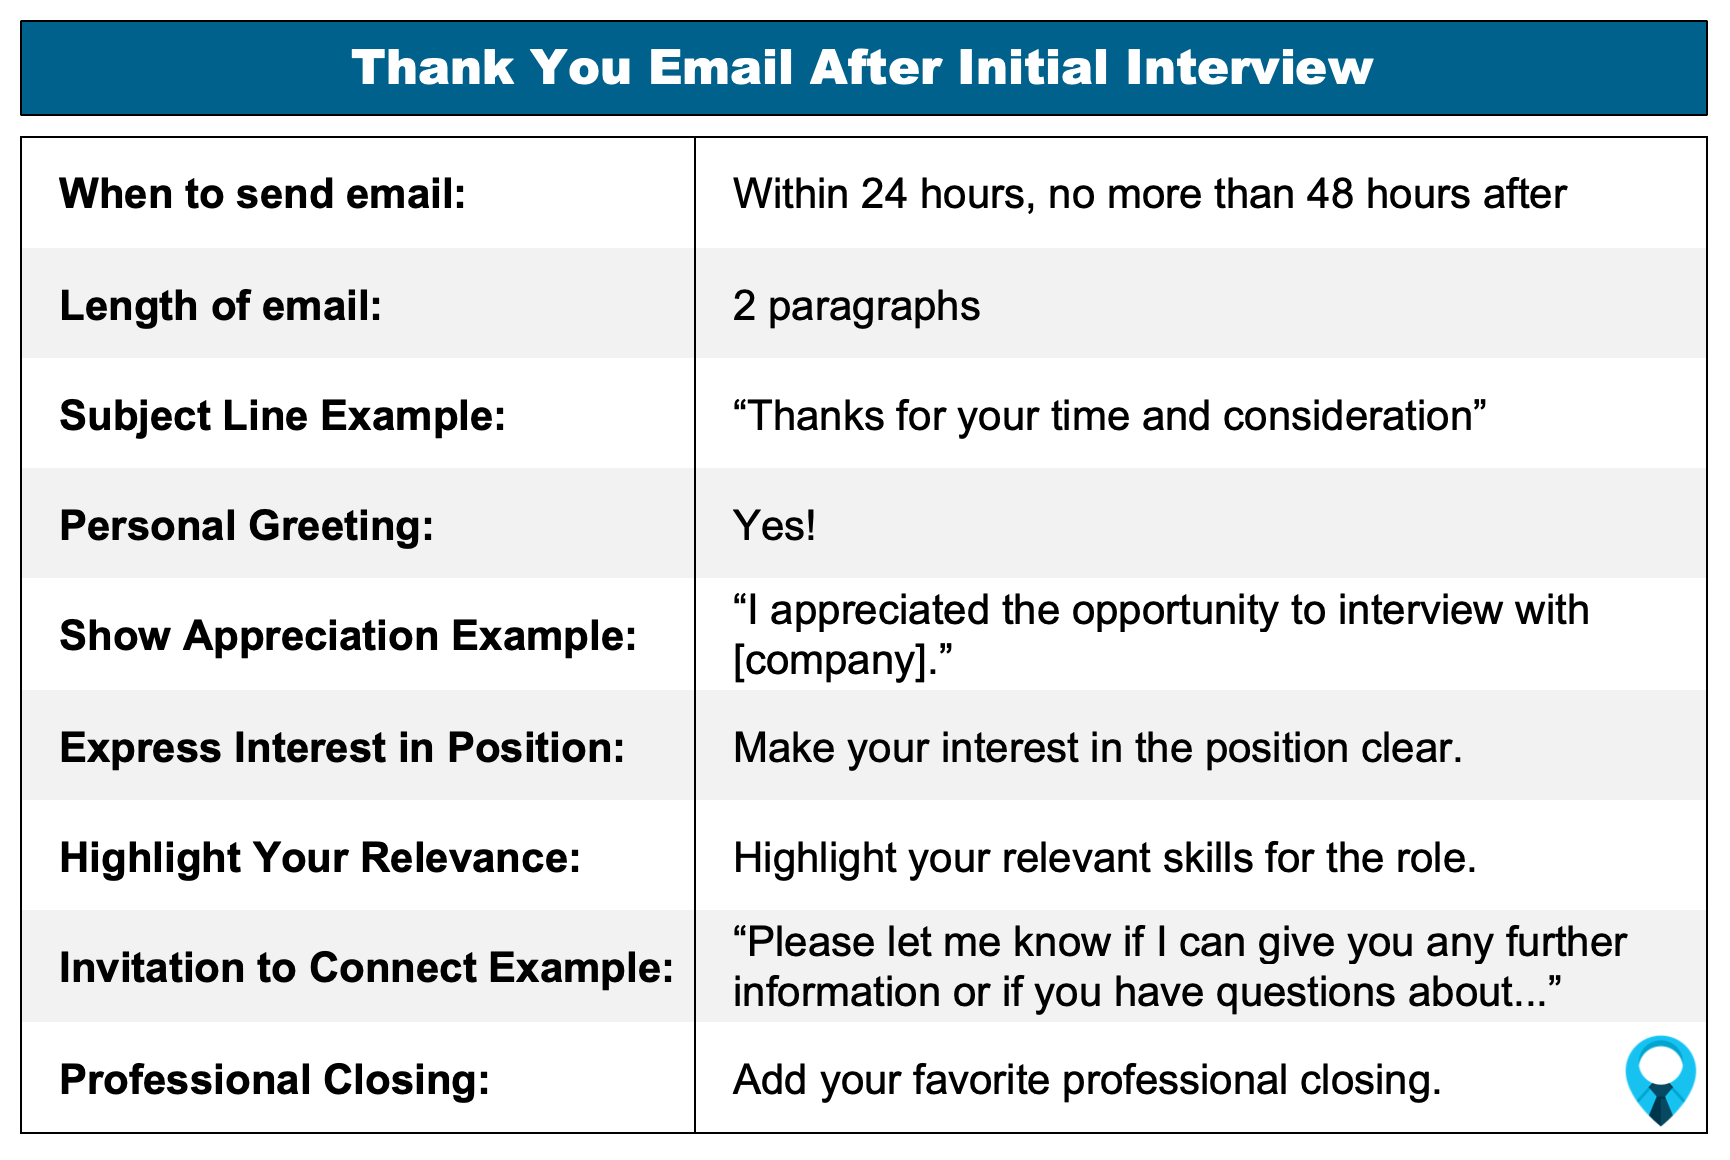 Thank You Email after Initial Interview